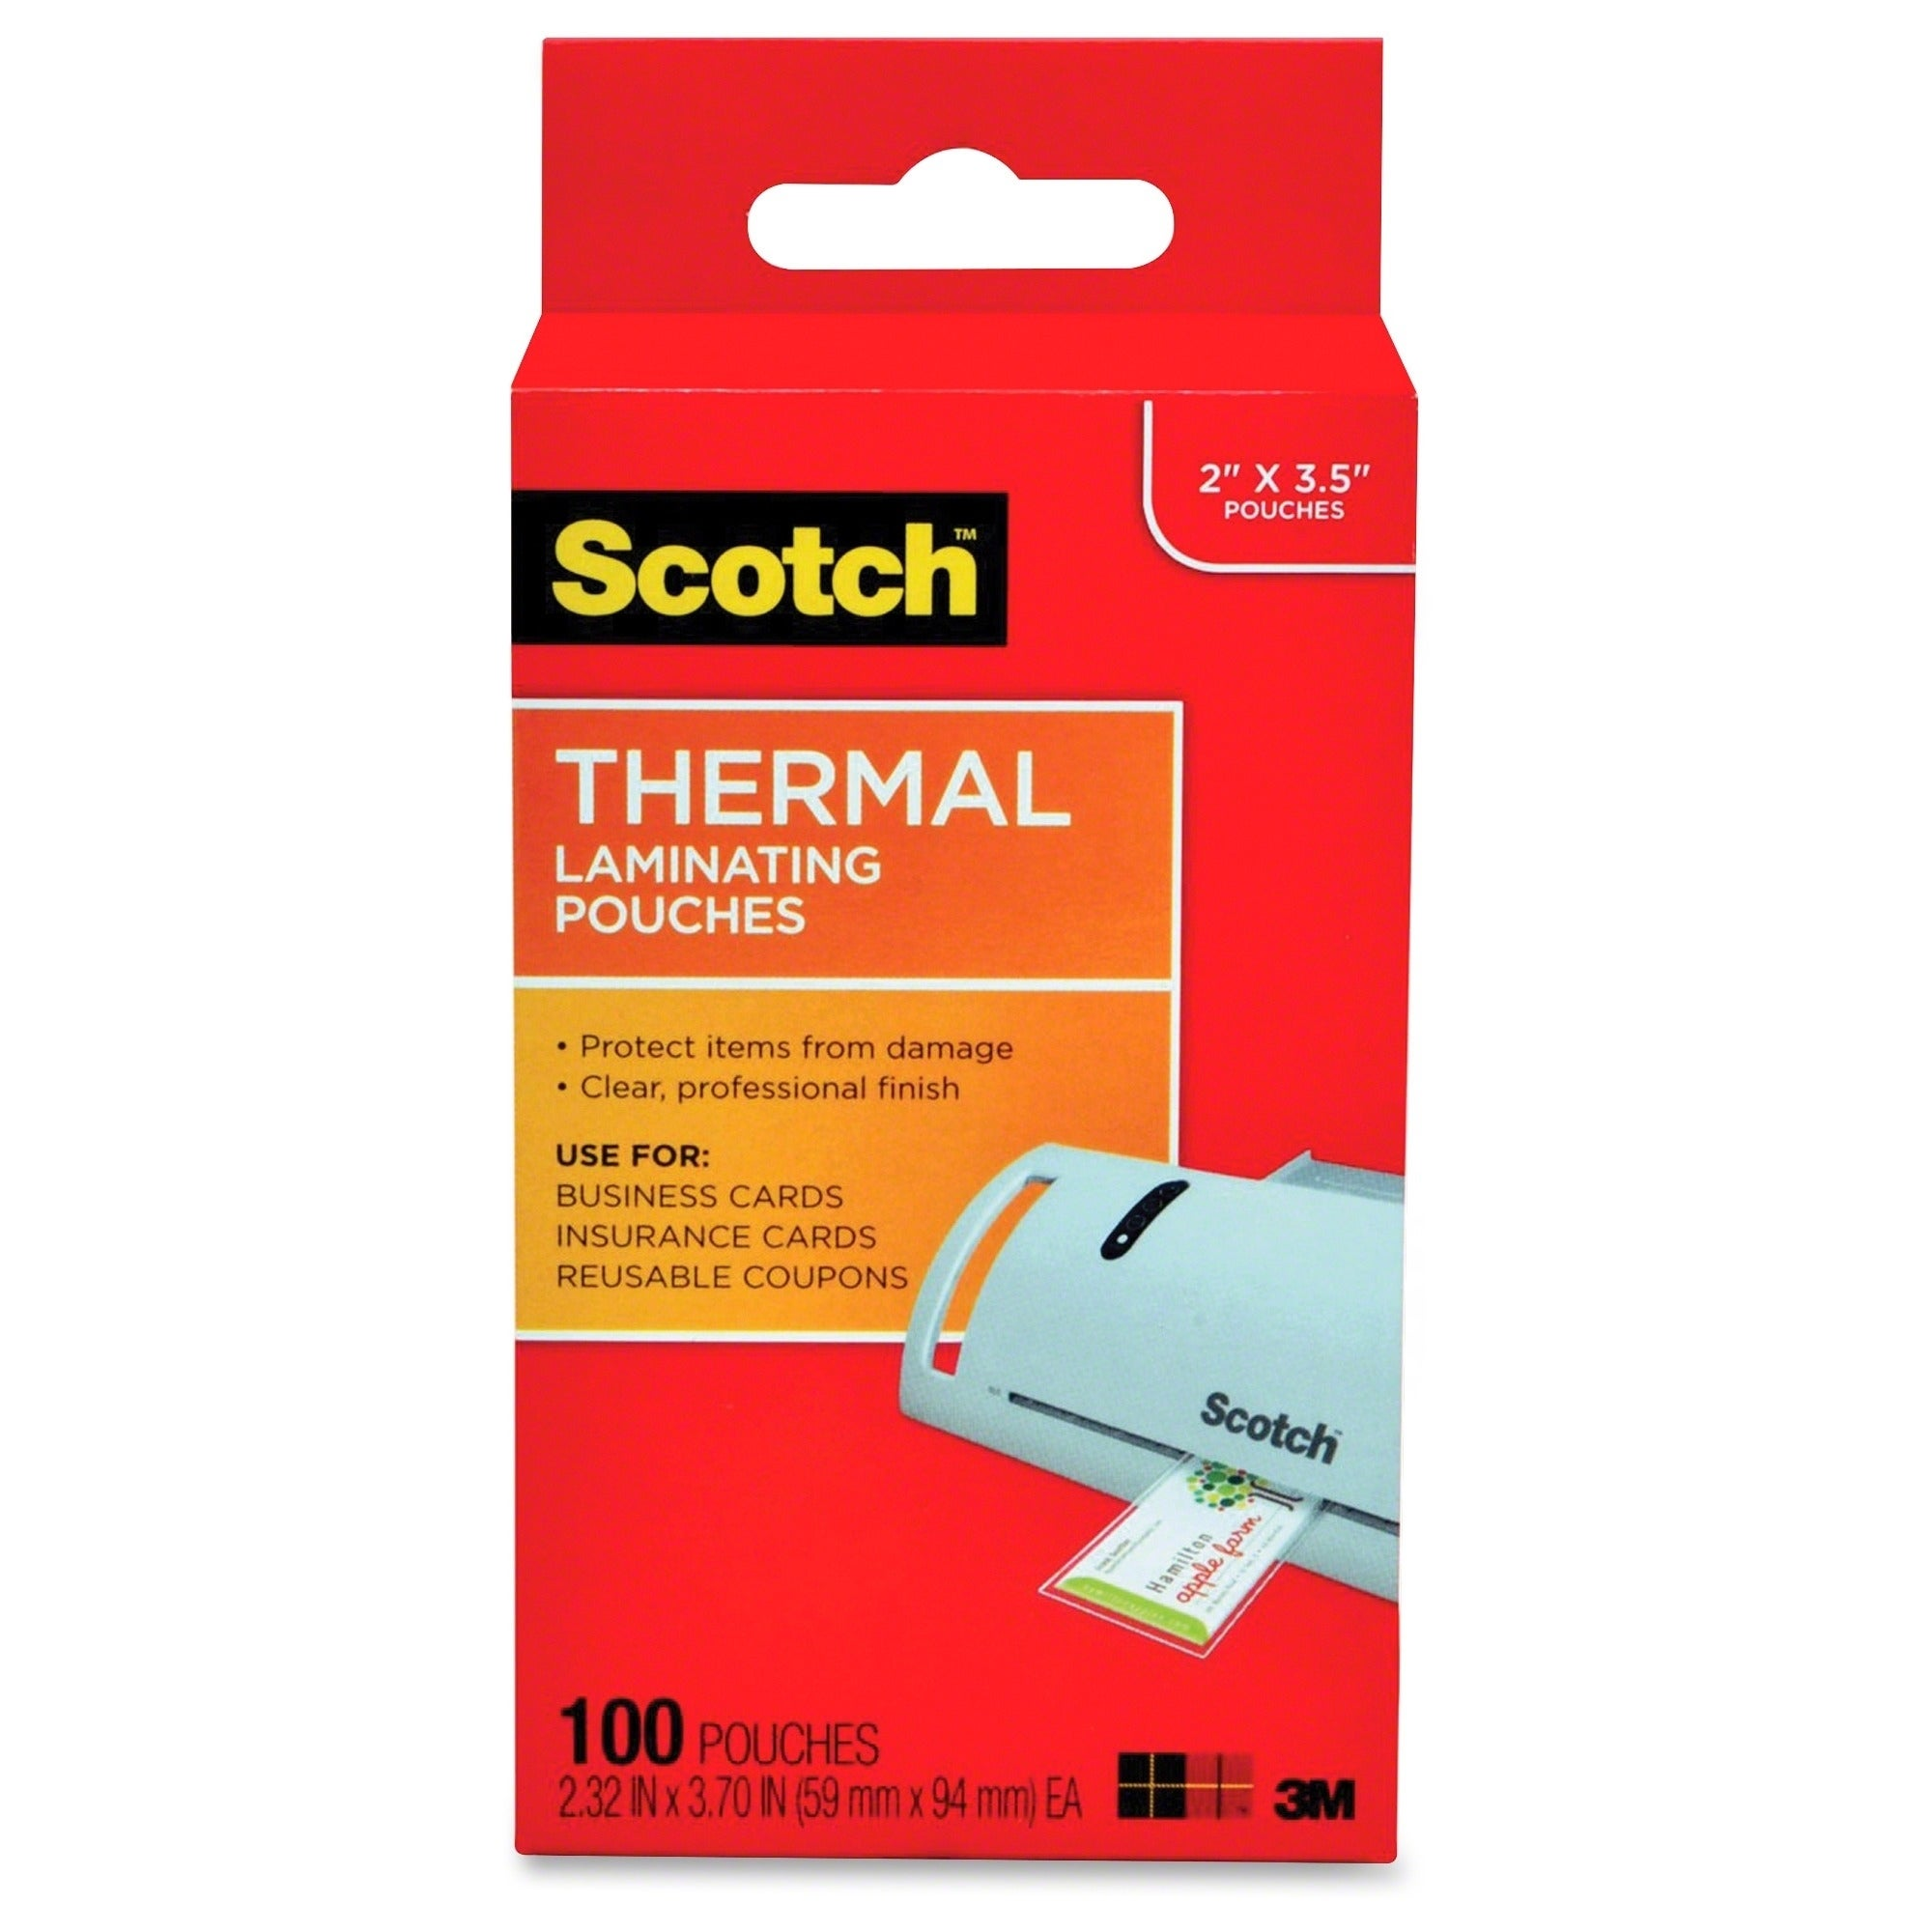 Scotch Thermal Laminating Pouches, Business Card Size - 100/PK ...